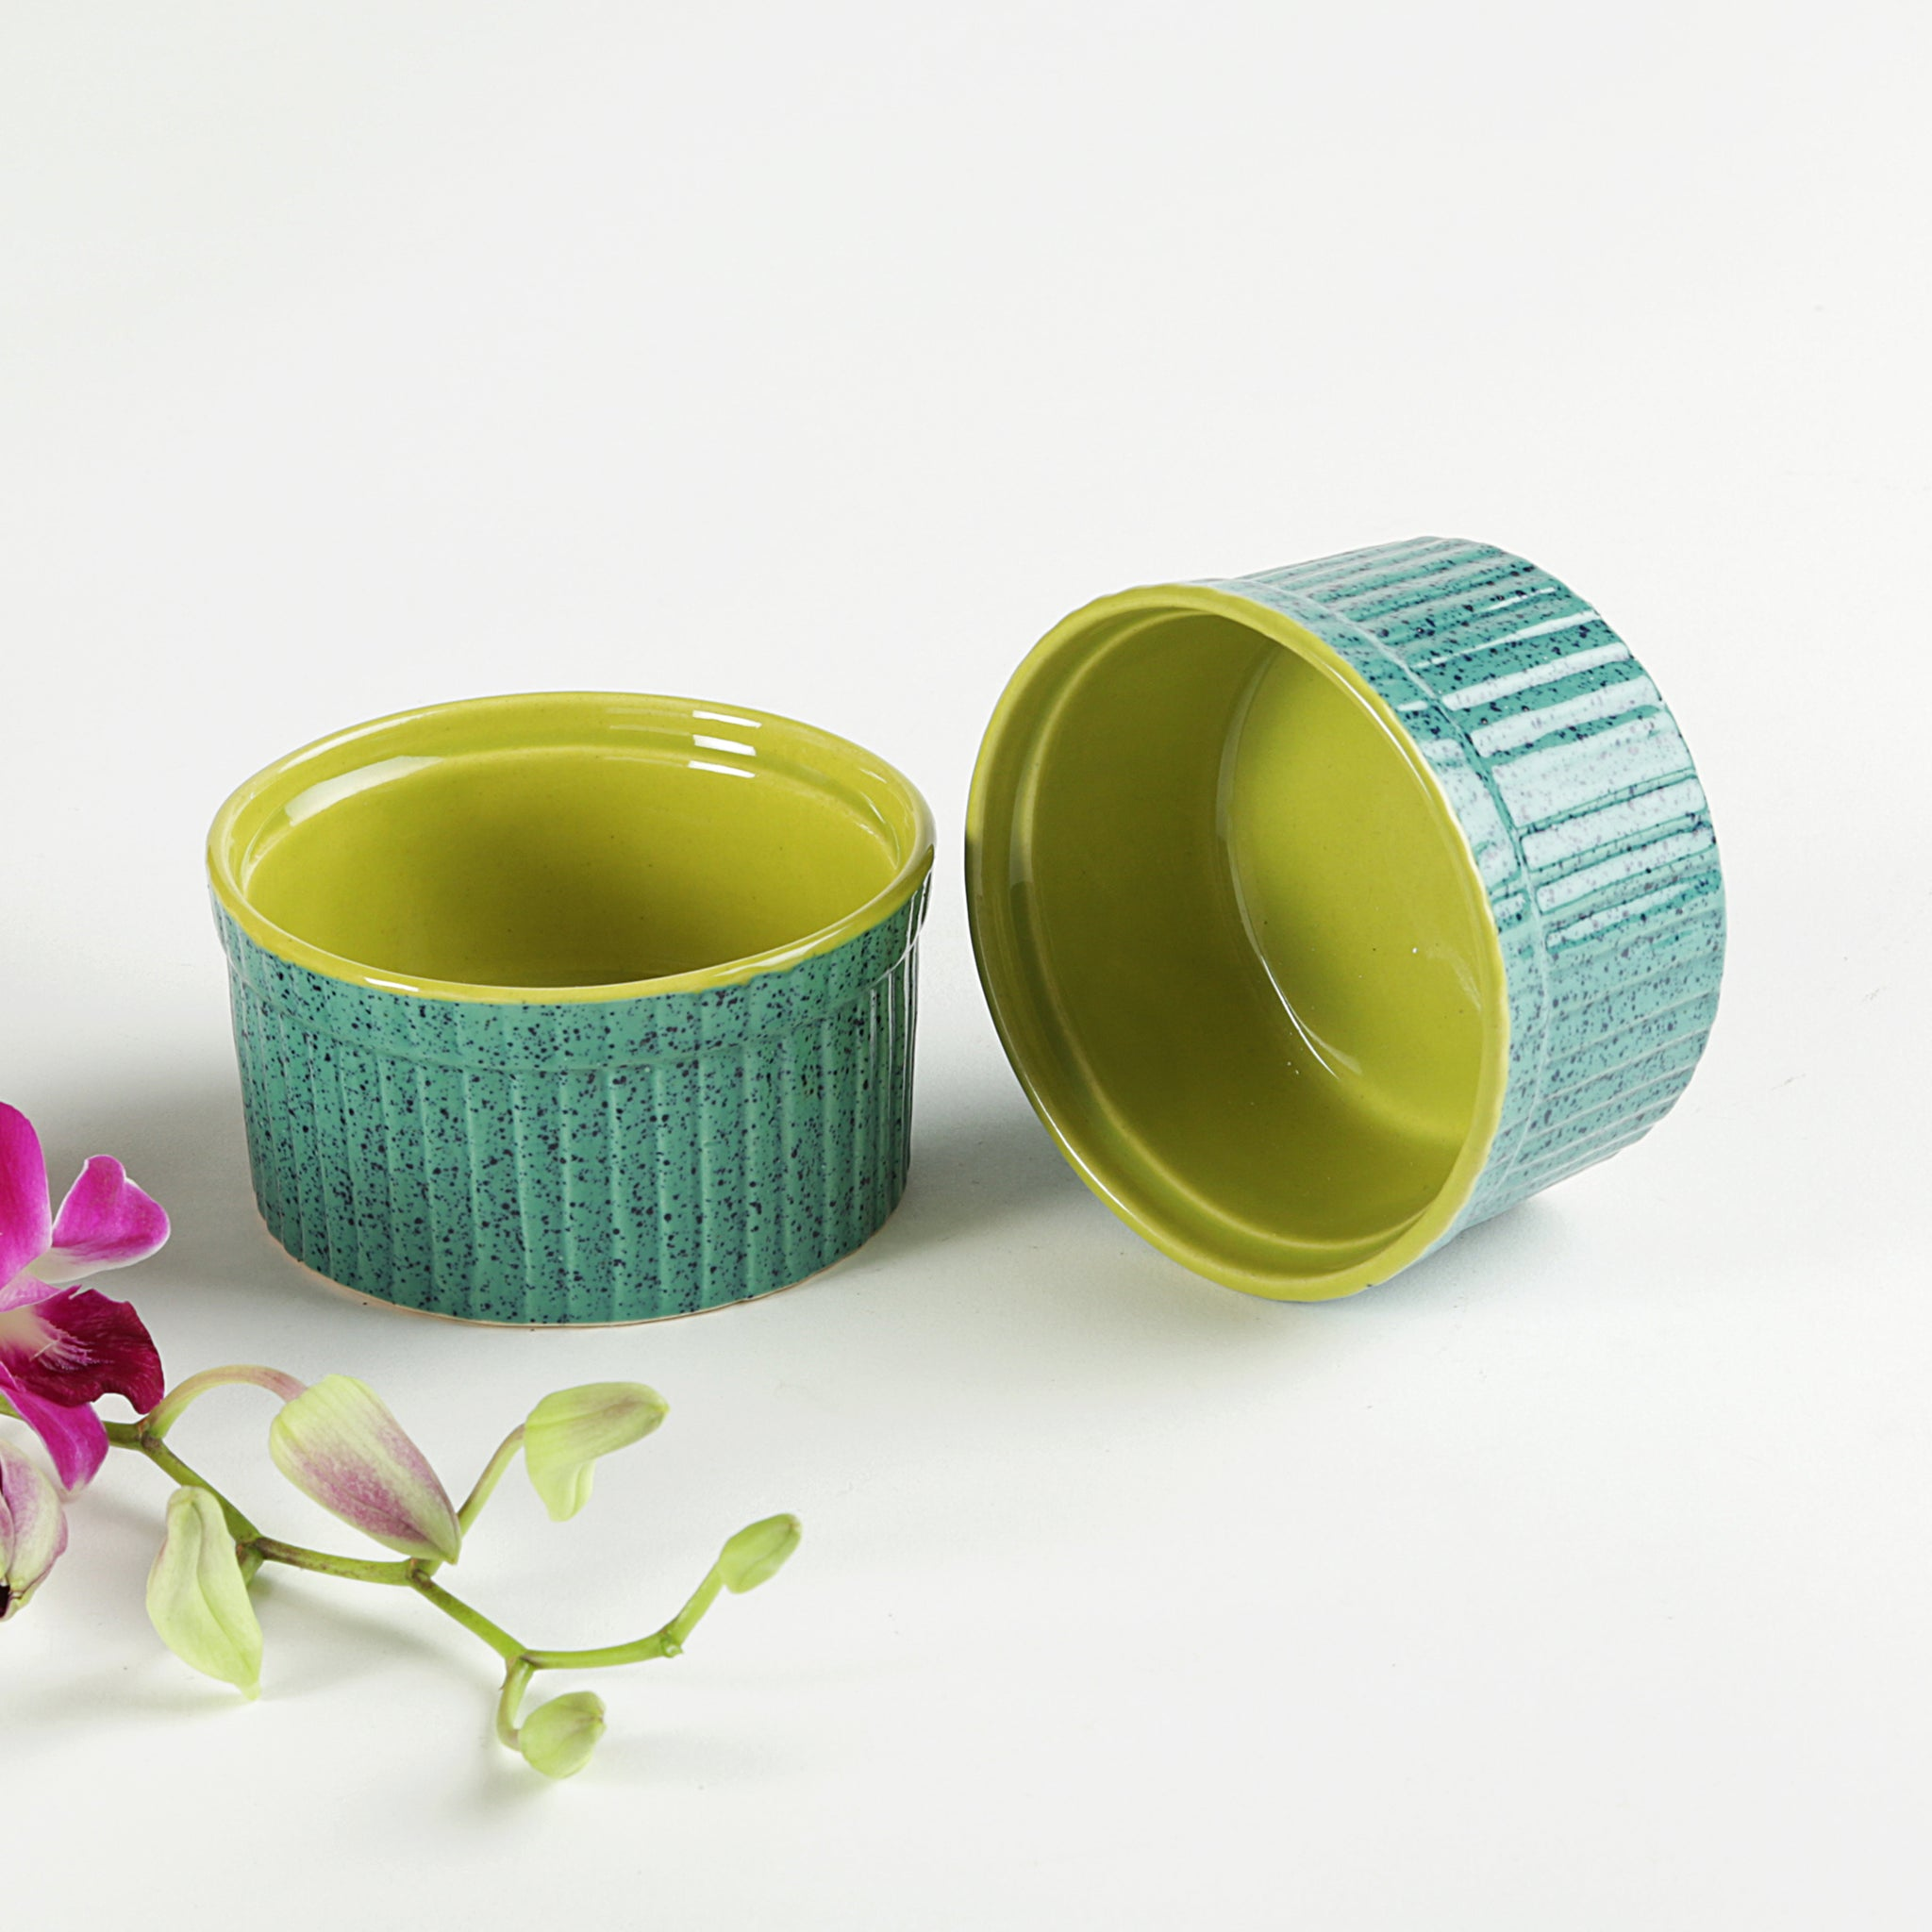 Dessert Bowls - Green - Set of 2